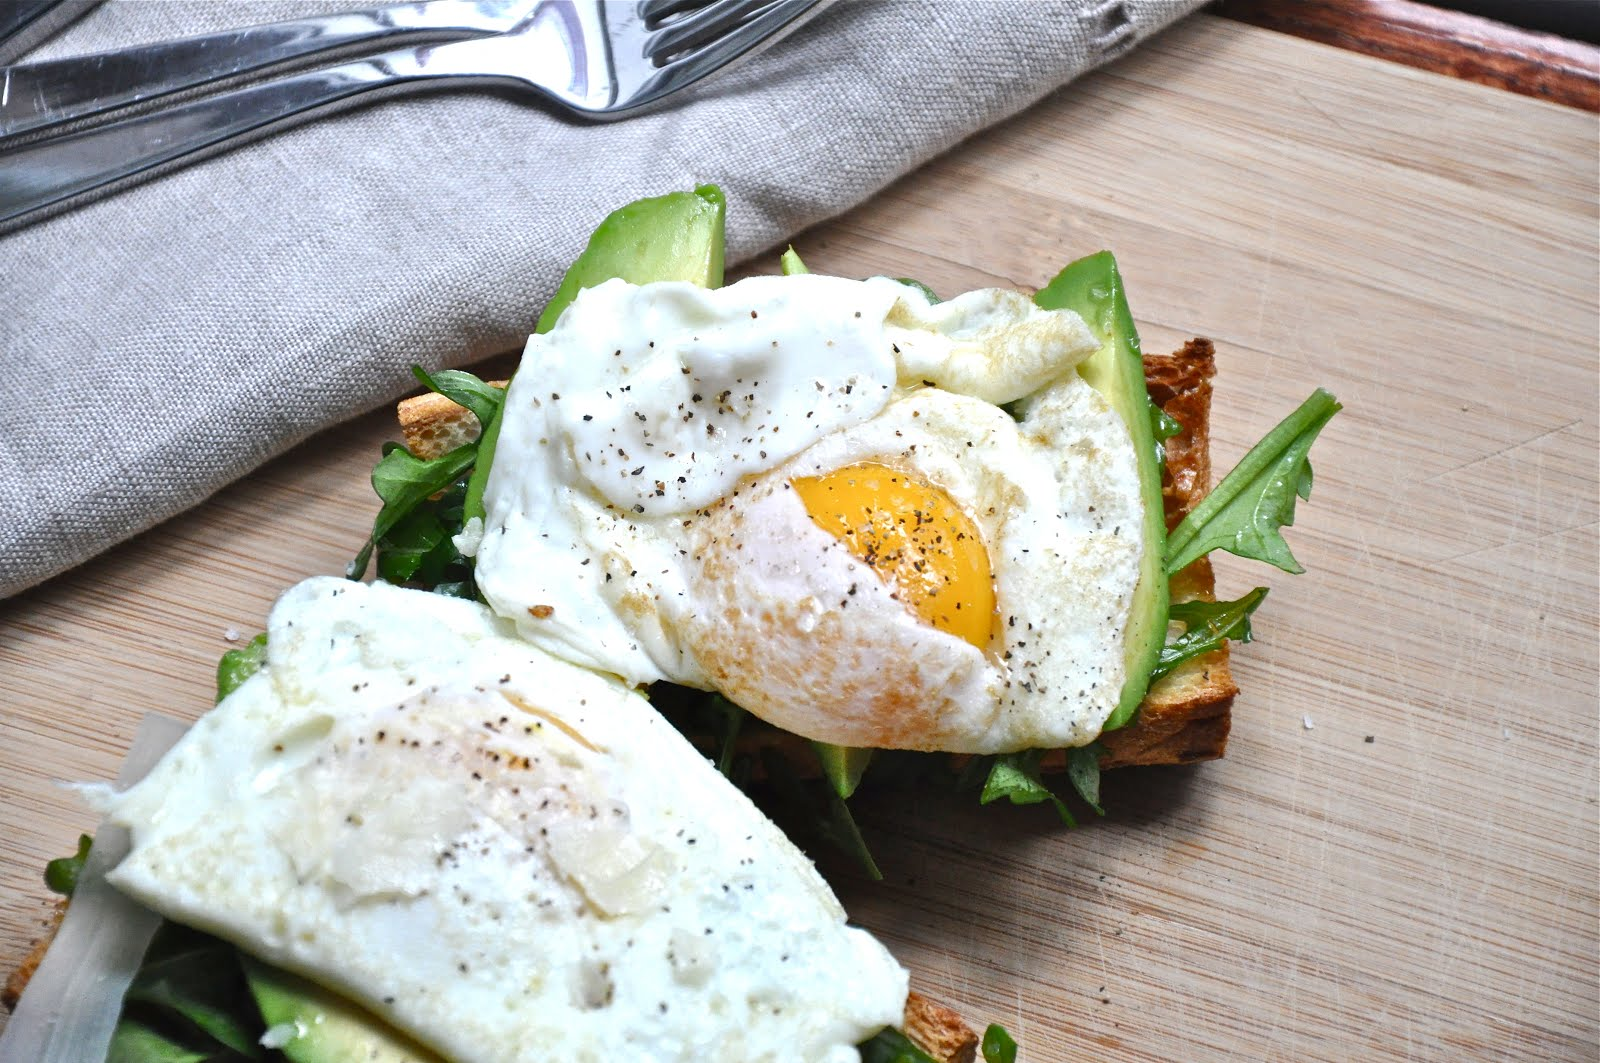 Rustic Avocado, Arugula and Fried Egg Open-Face Sandwich. This ...